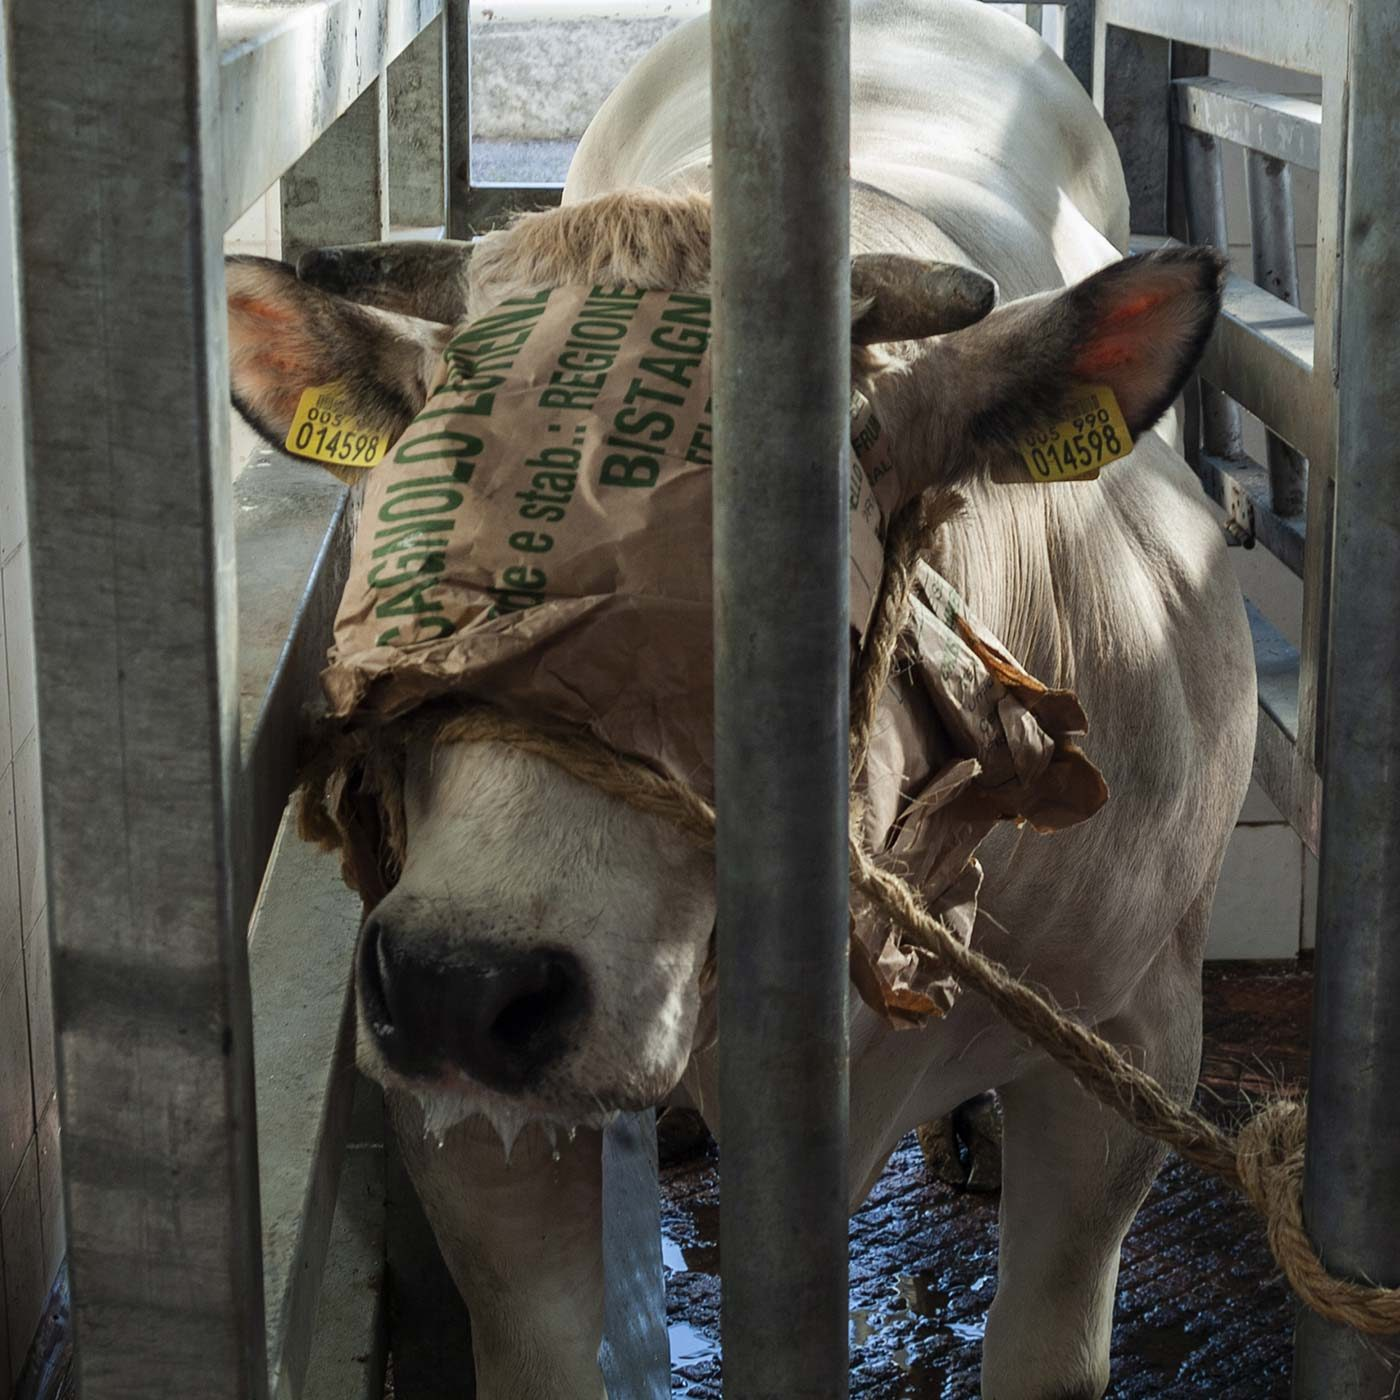 Cows Abused, Suffered Prolonged Deaths in Italian Slaughterhouse